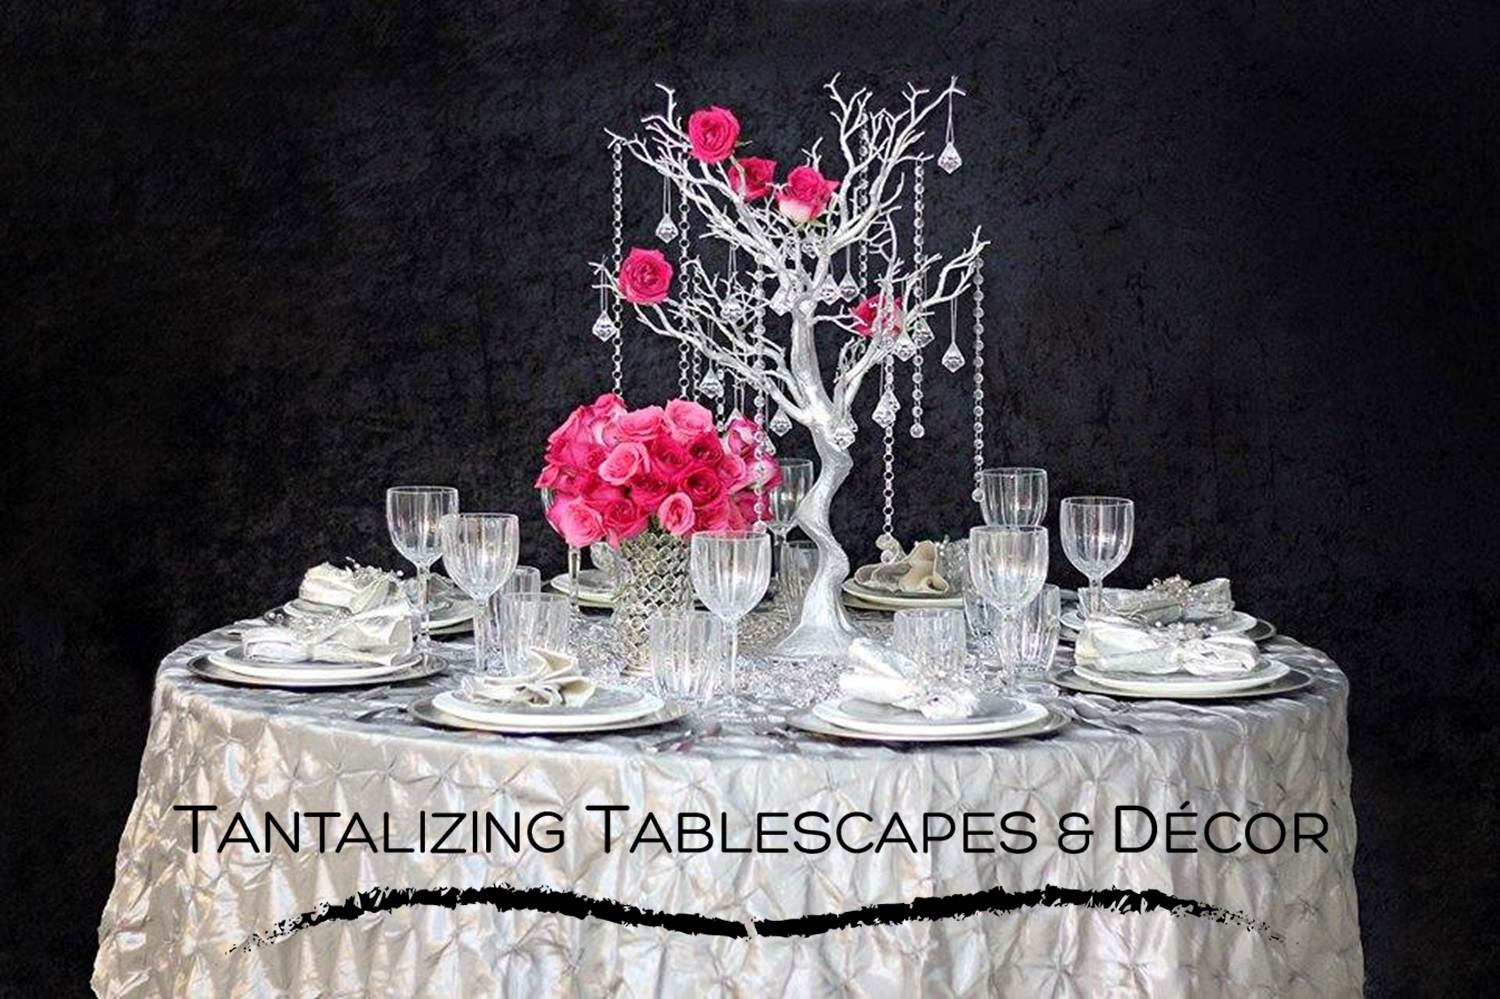 tantalizing+tablescapes+&+decor+2014+(c)?format=1500w